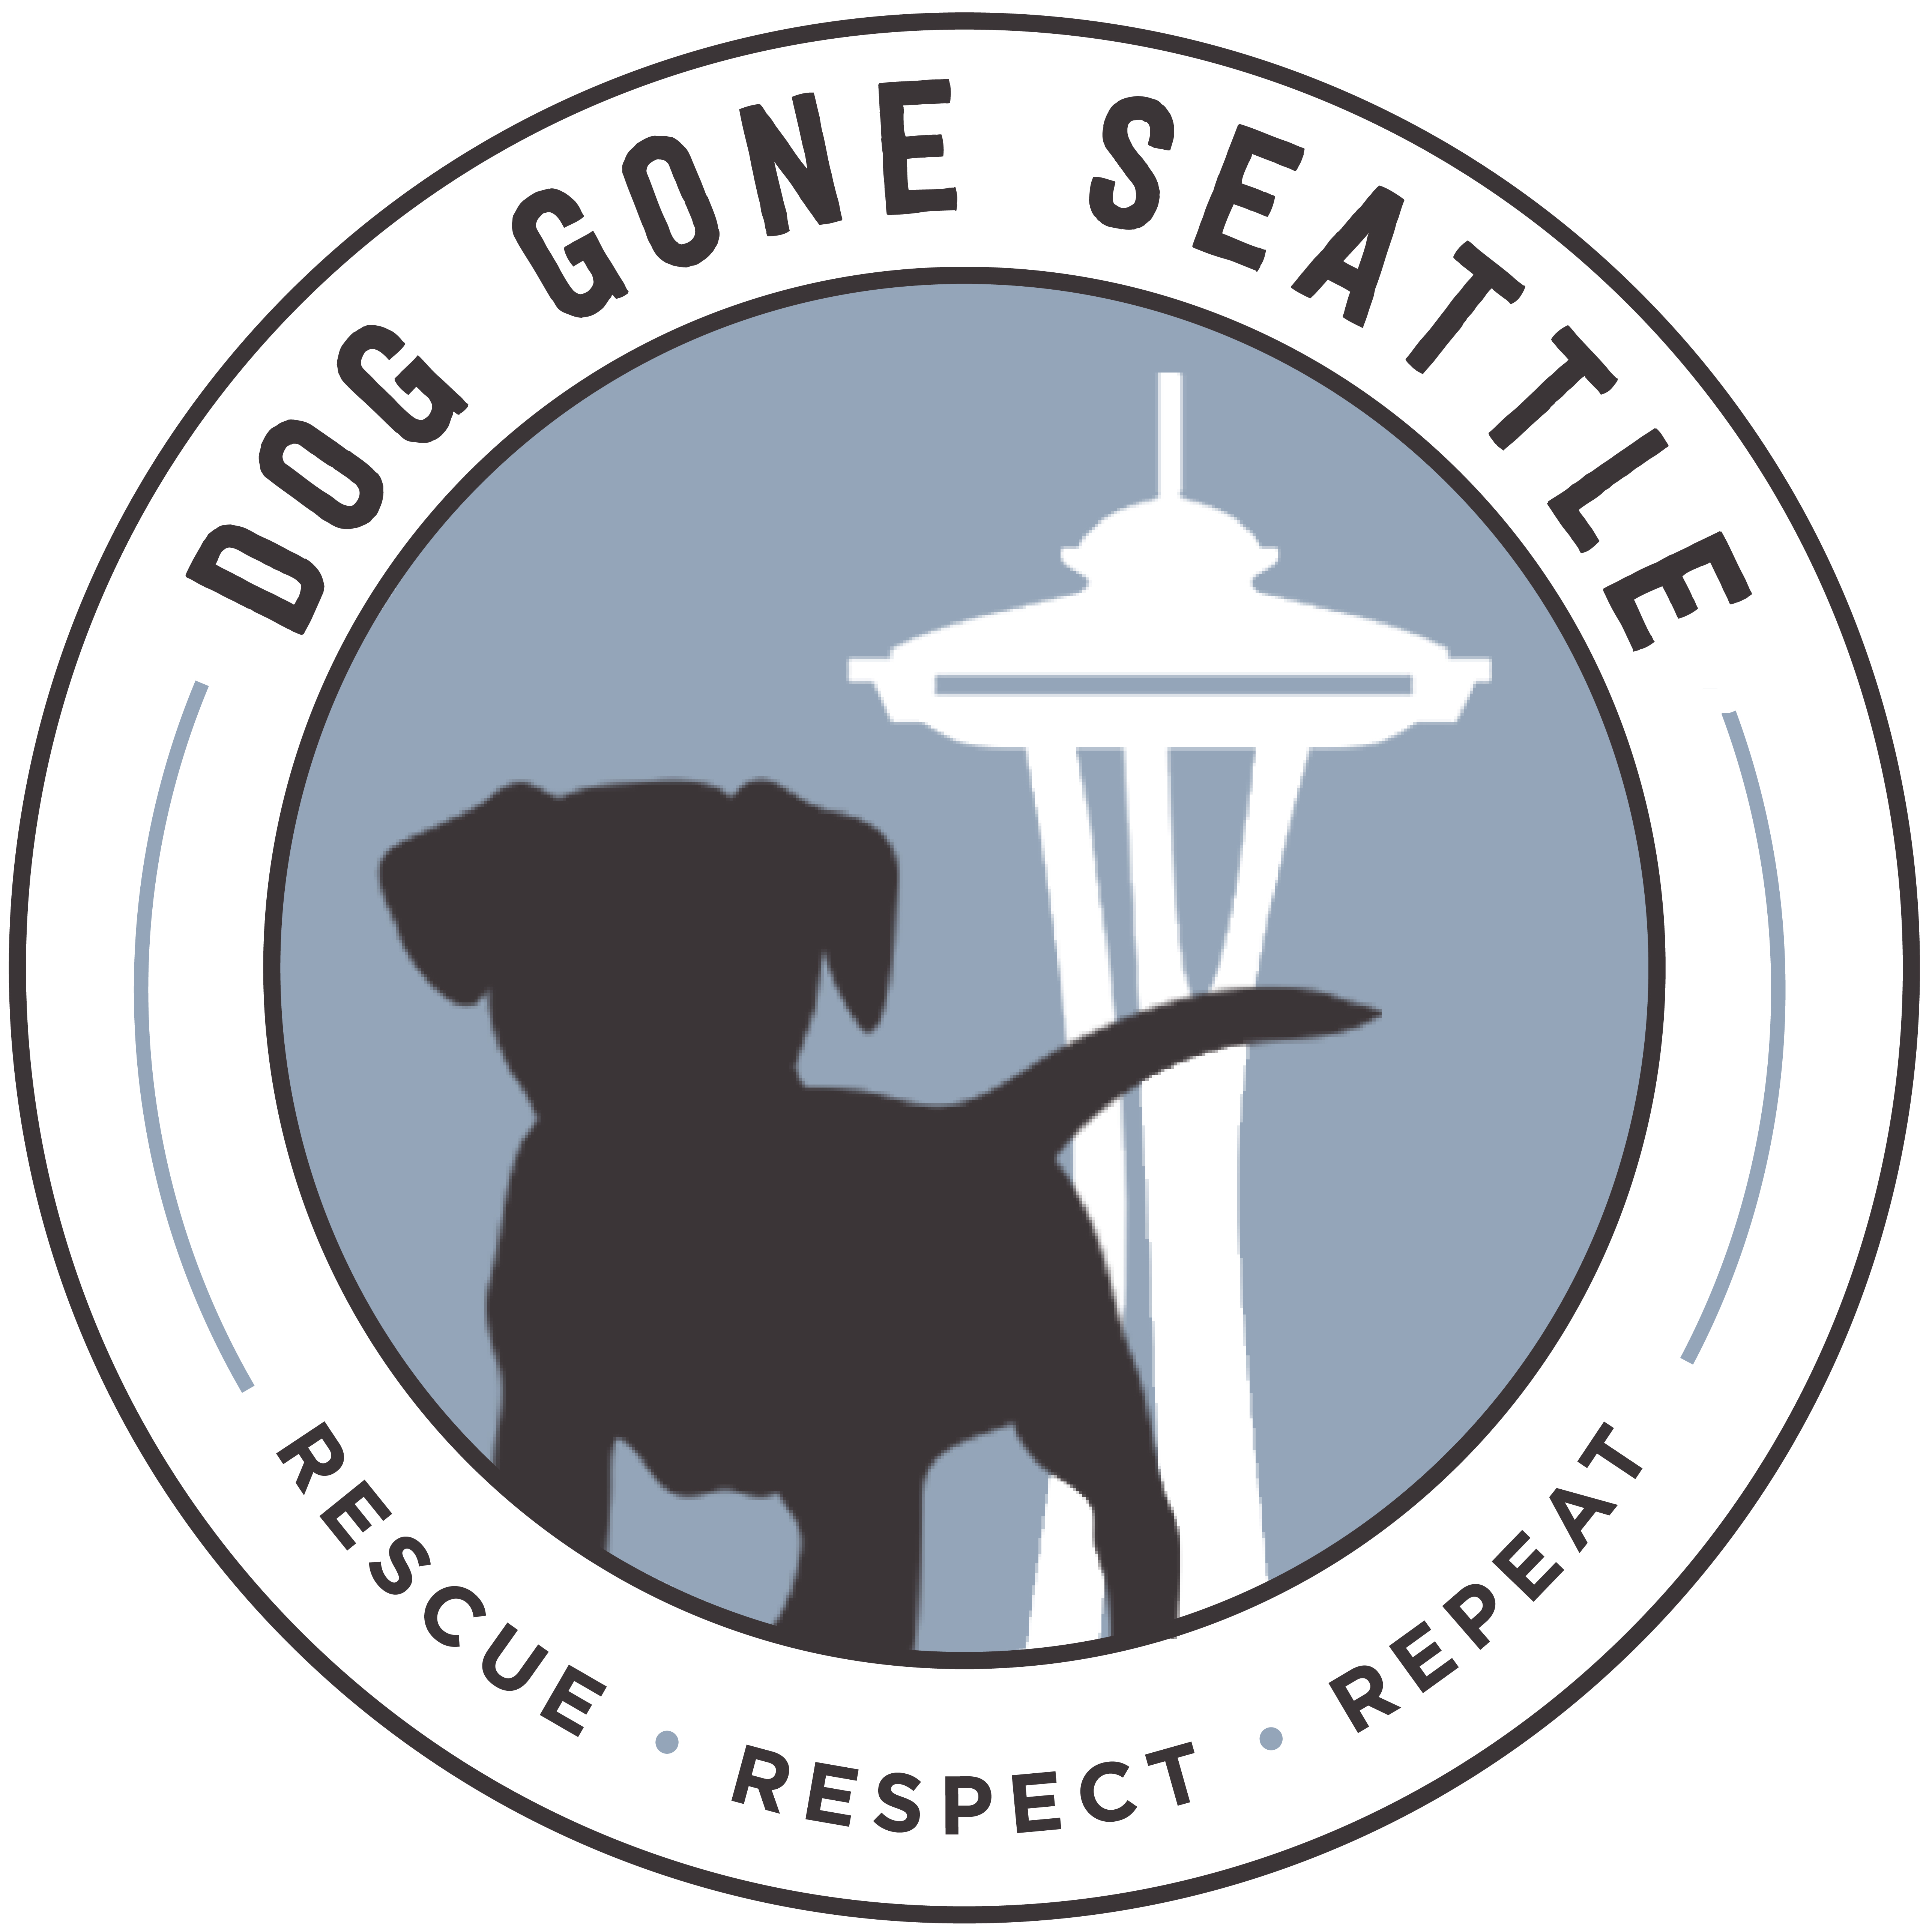 Adoption Contract Dog Gone Seattle